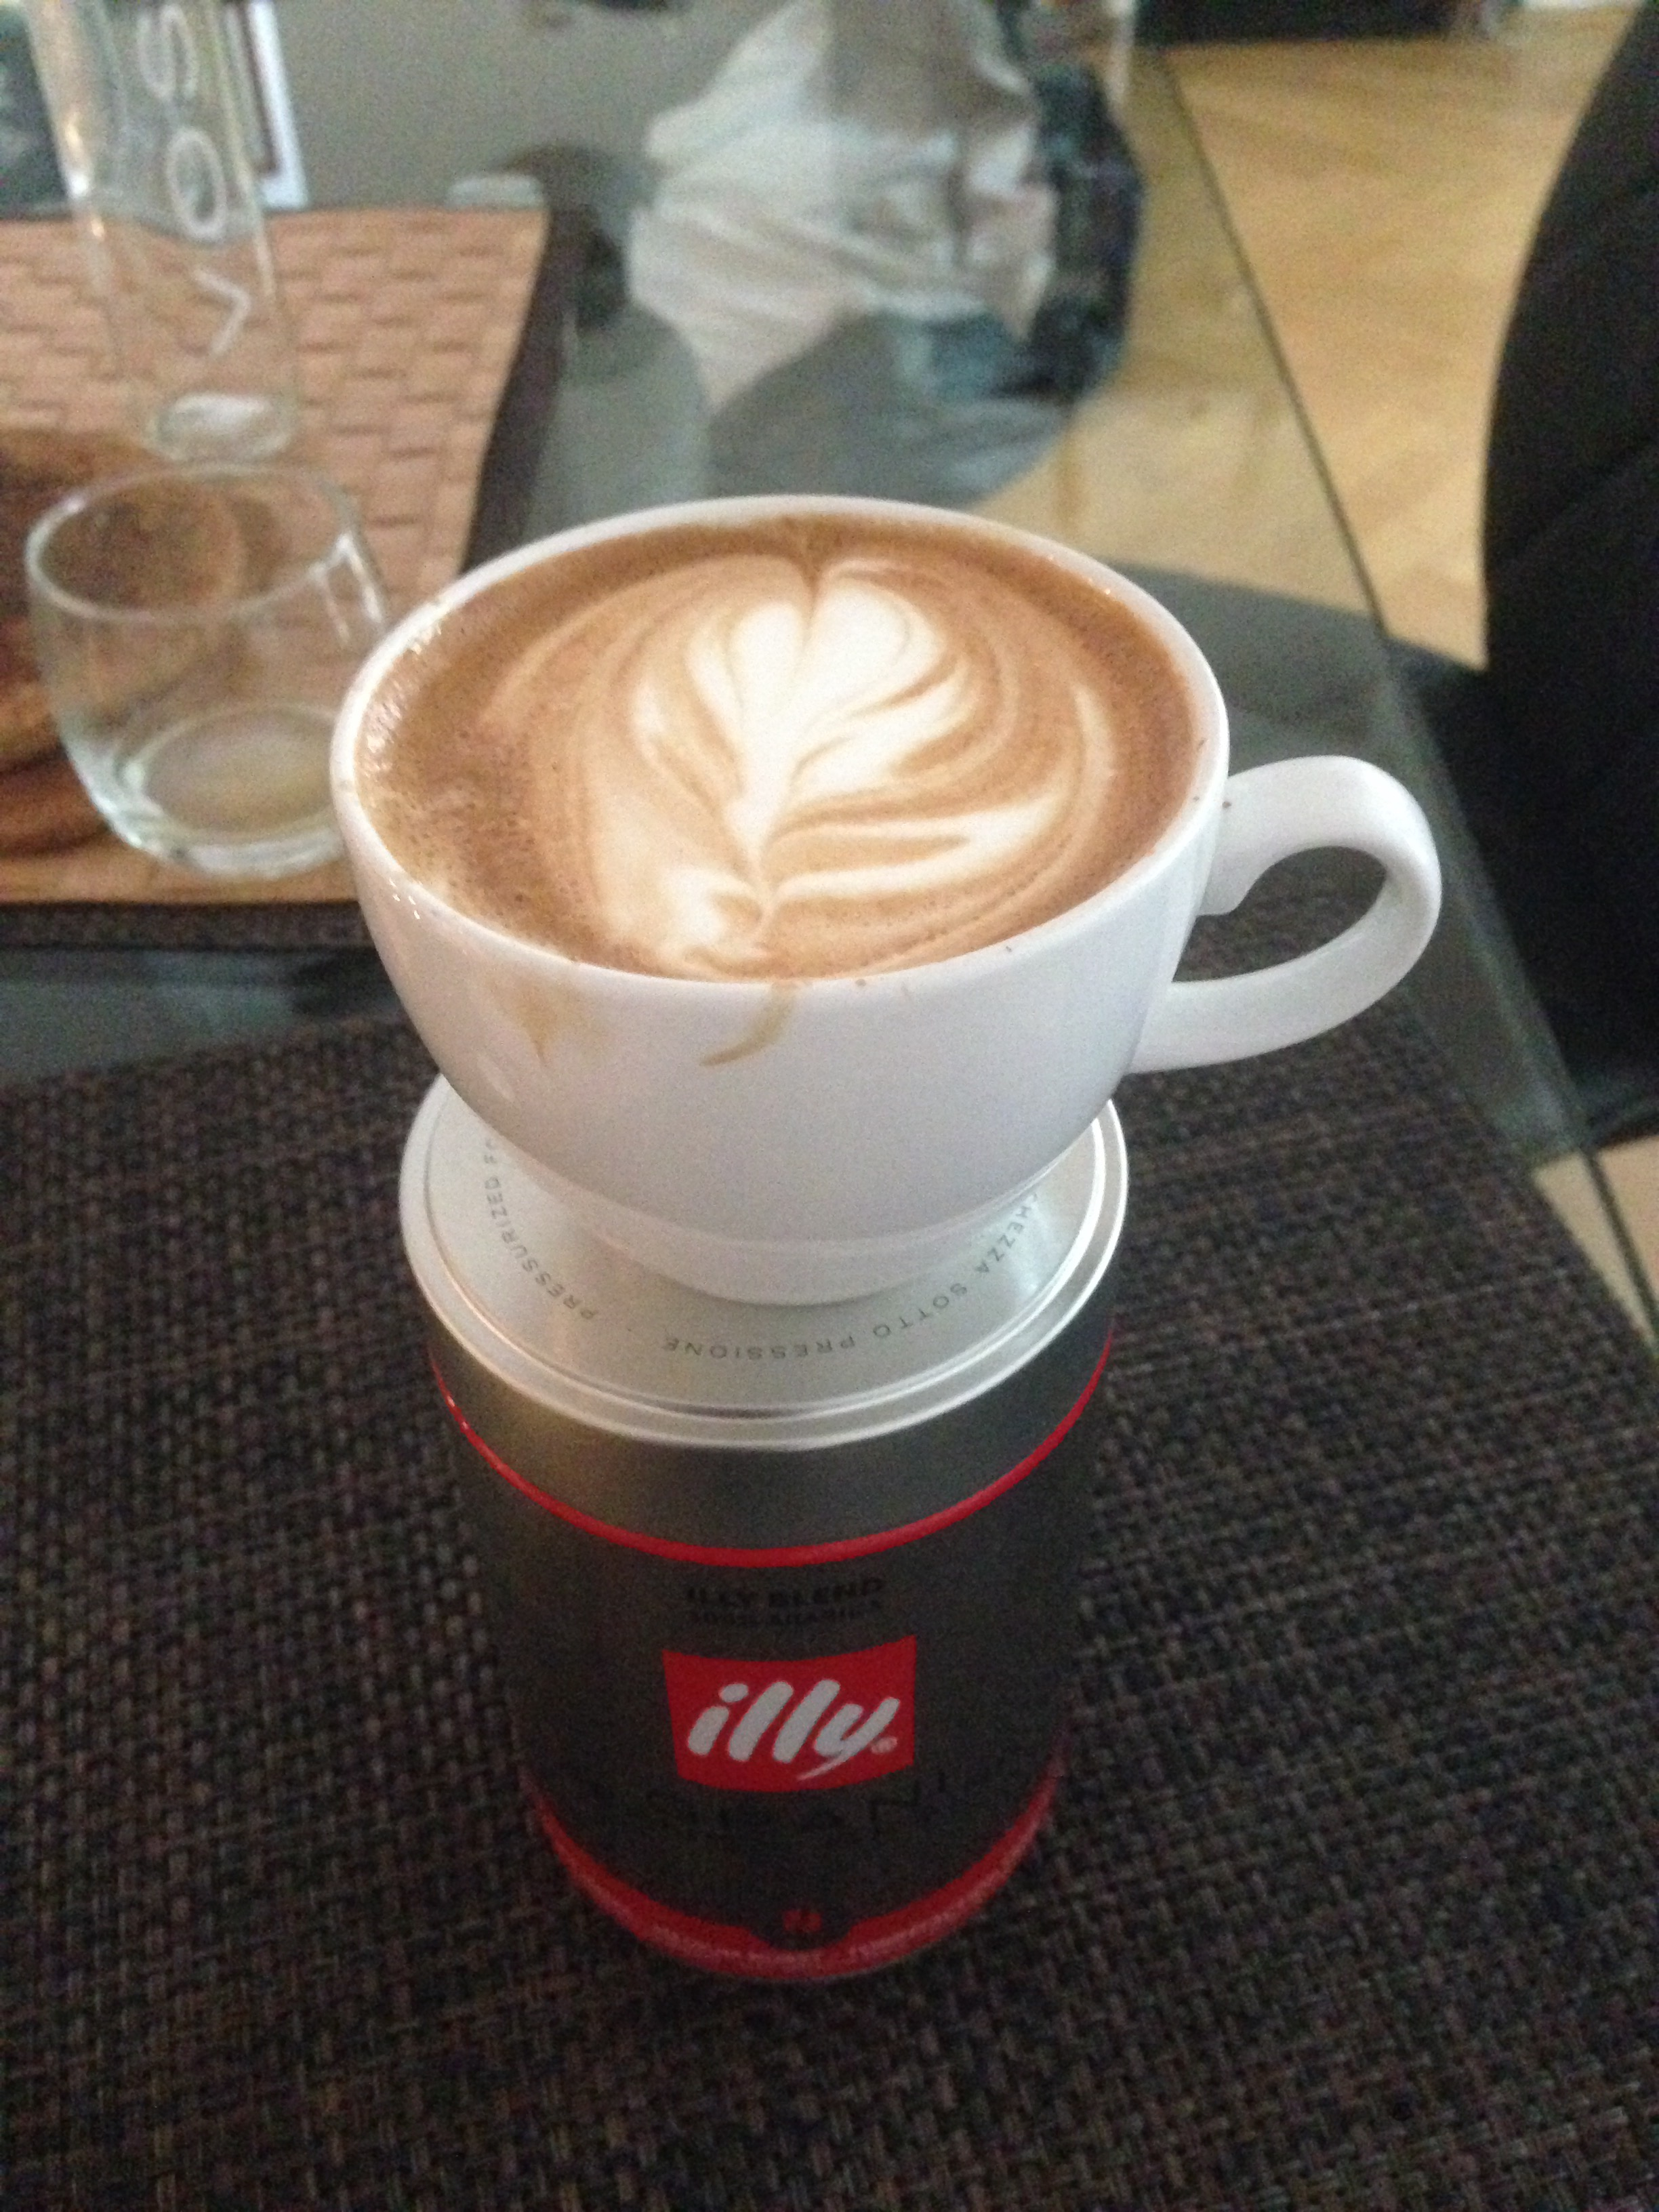 expresso espresso case analysis Expresso espresso  expresso espresso case analysis analyze and record the current situation a- the environment the specialty coffee industry had seen steady growth for years and the trend was expected to continue until at least 2015.